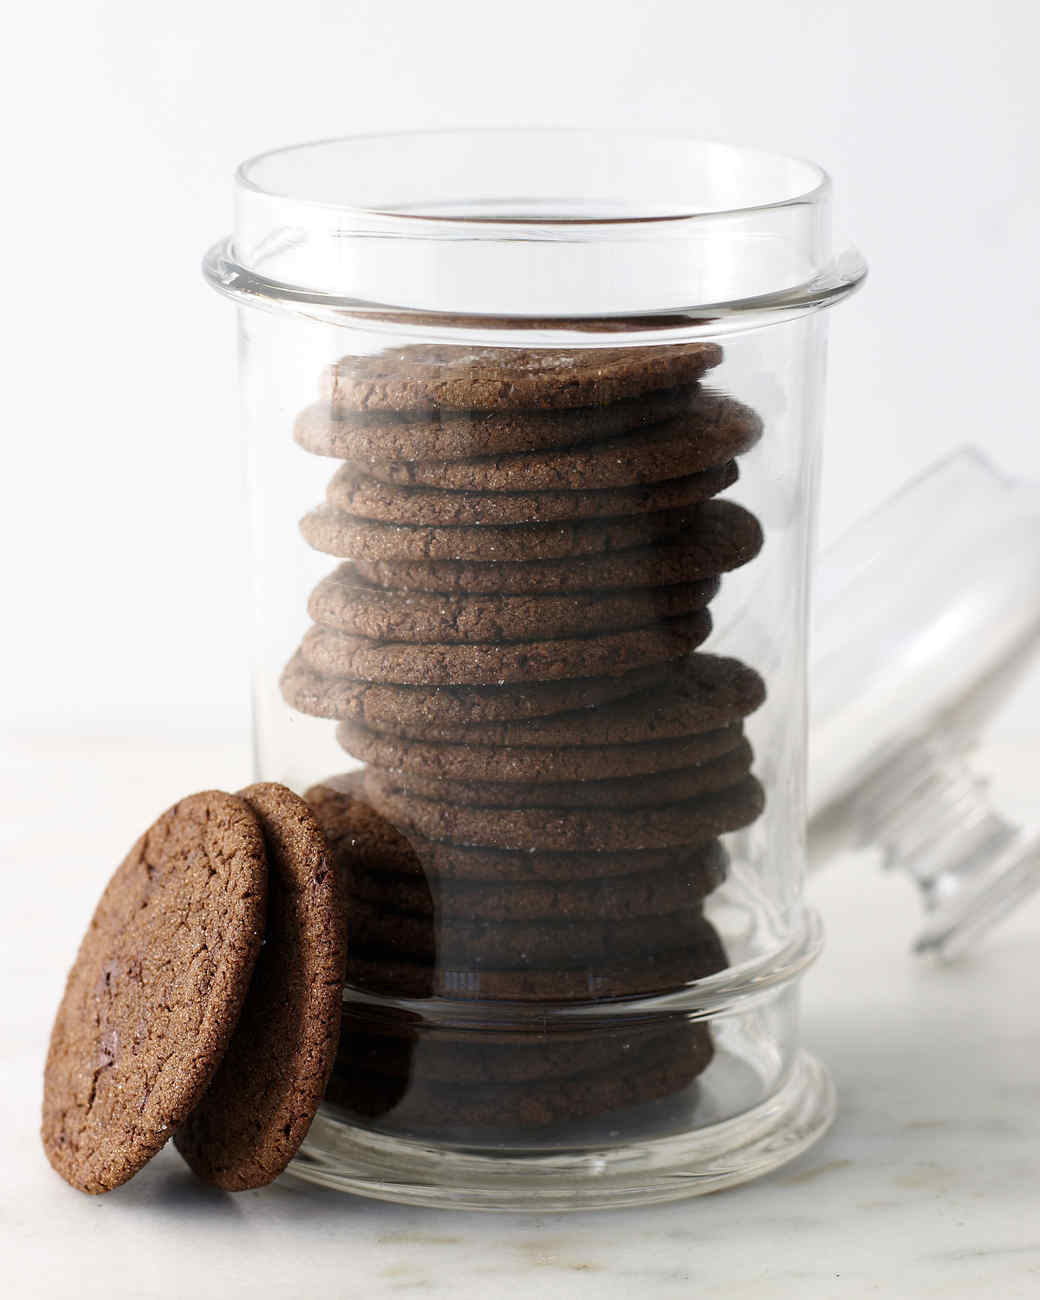 chewy-chocolate-molasses-cookies-mhlb2004.jpg